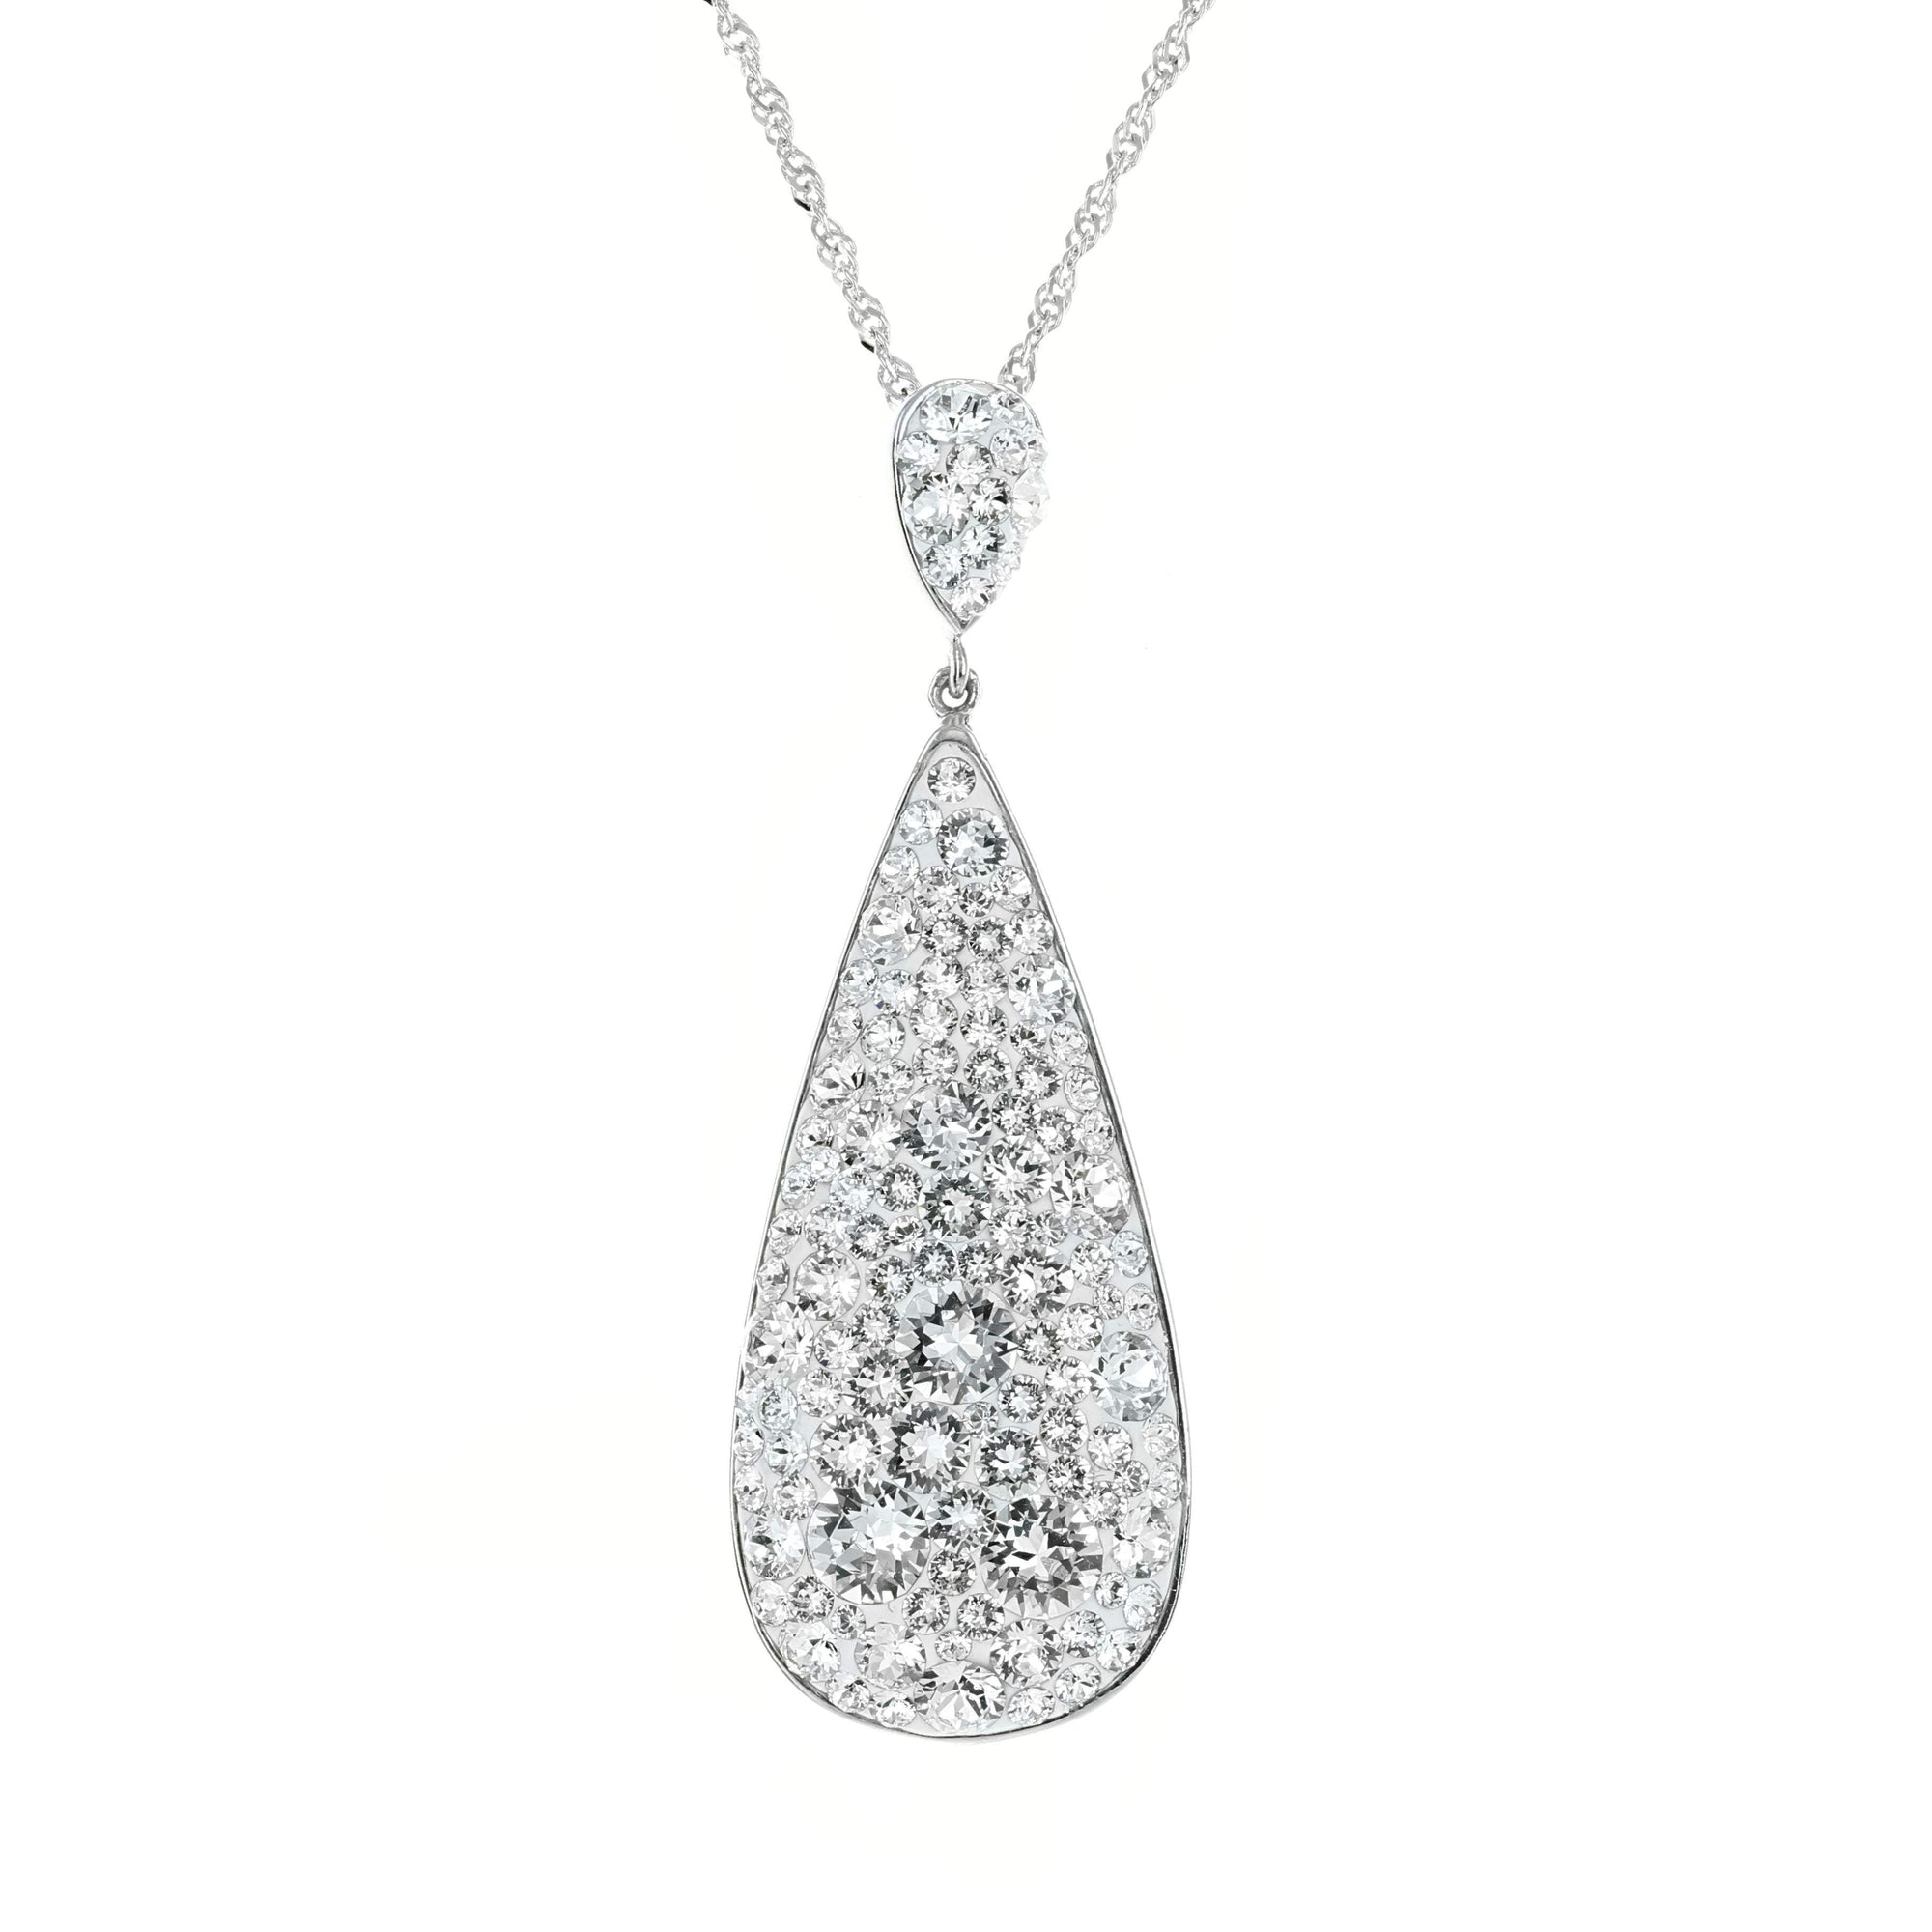 Swarovski Crystal Long Teardrop Pendant